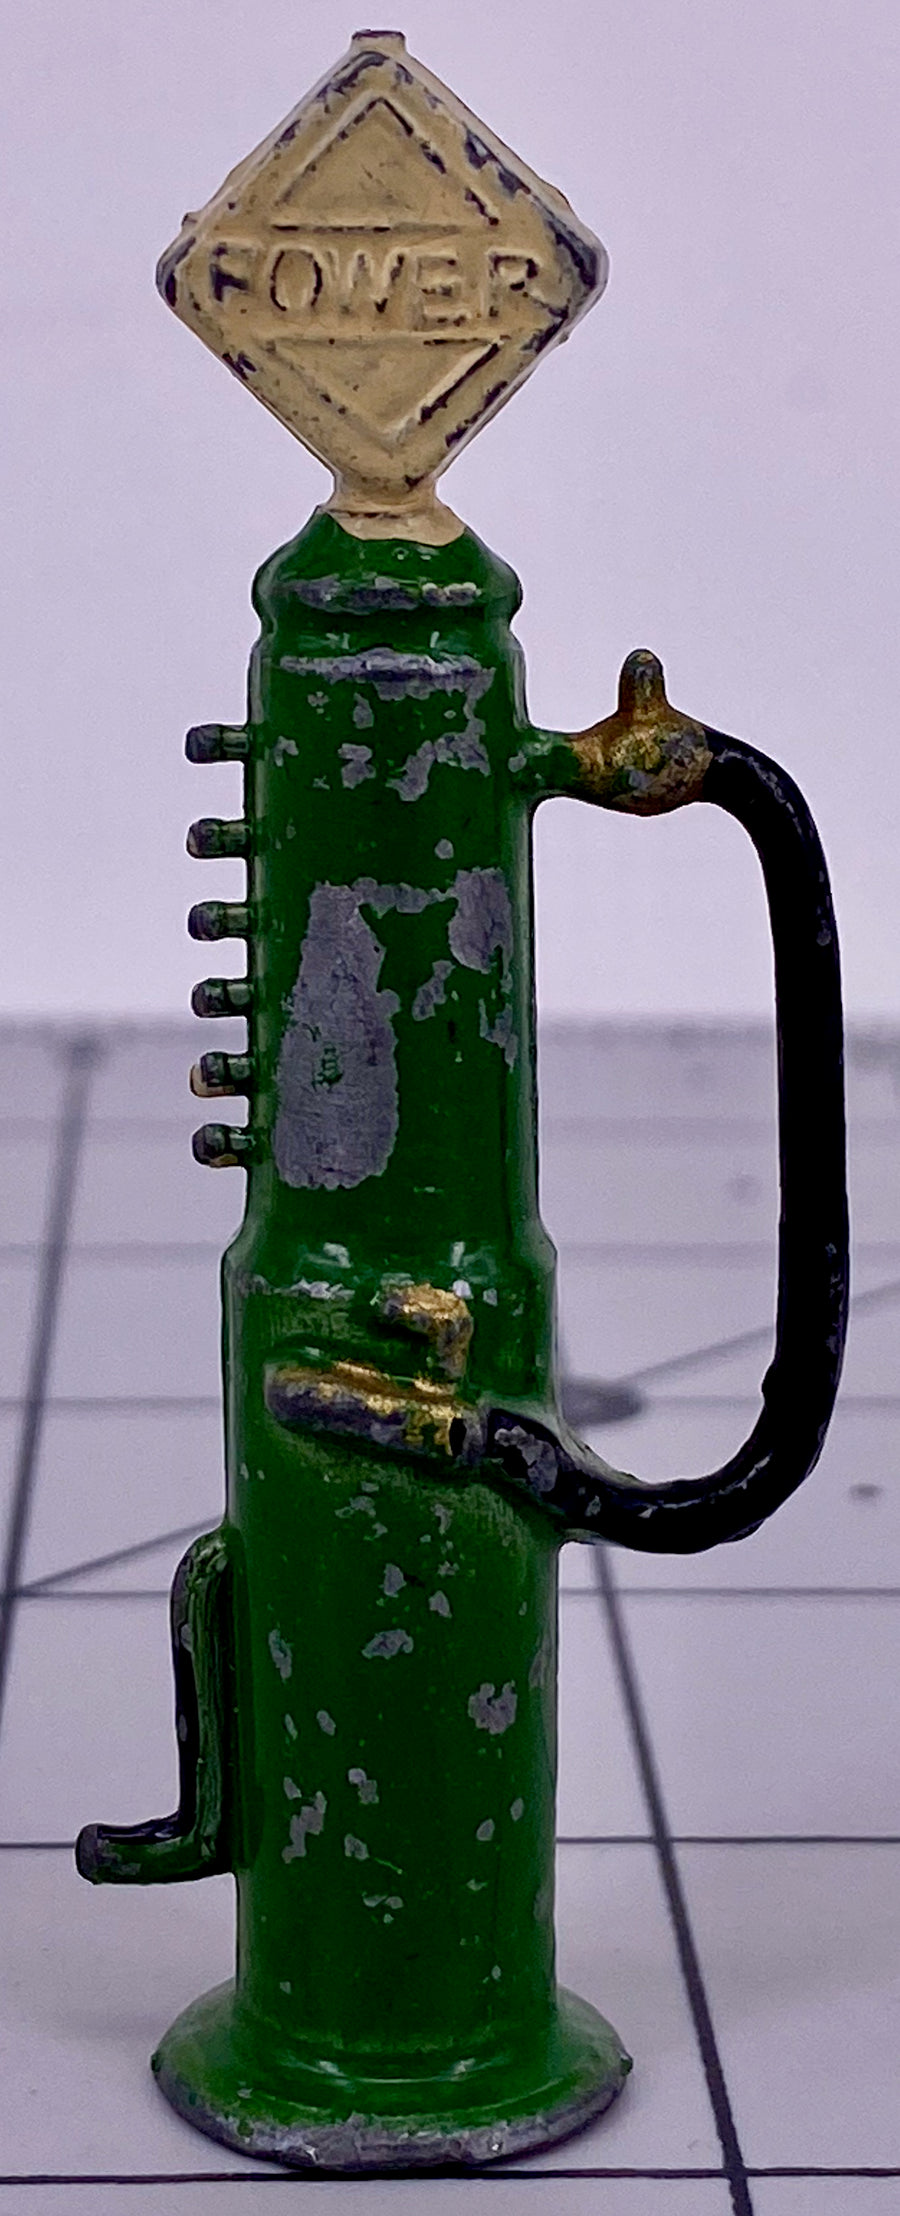 Taylor & Barrett green Power Petroleum petrol pump